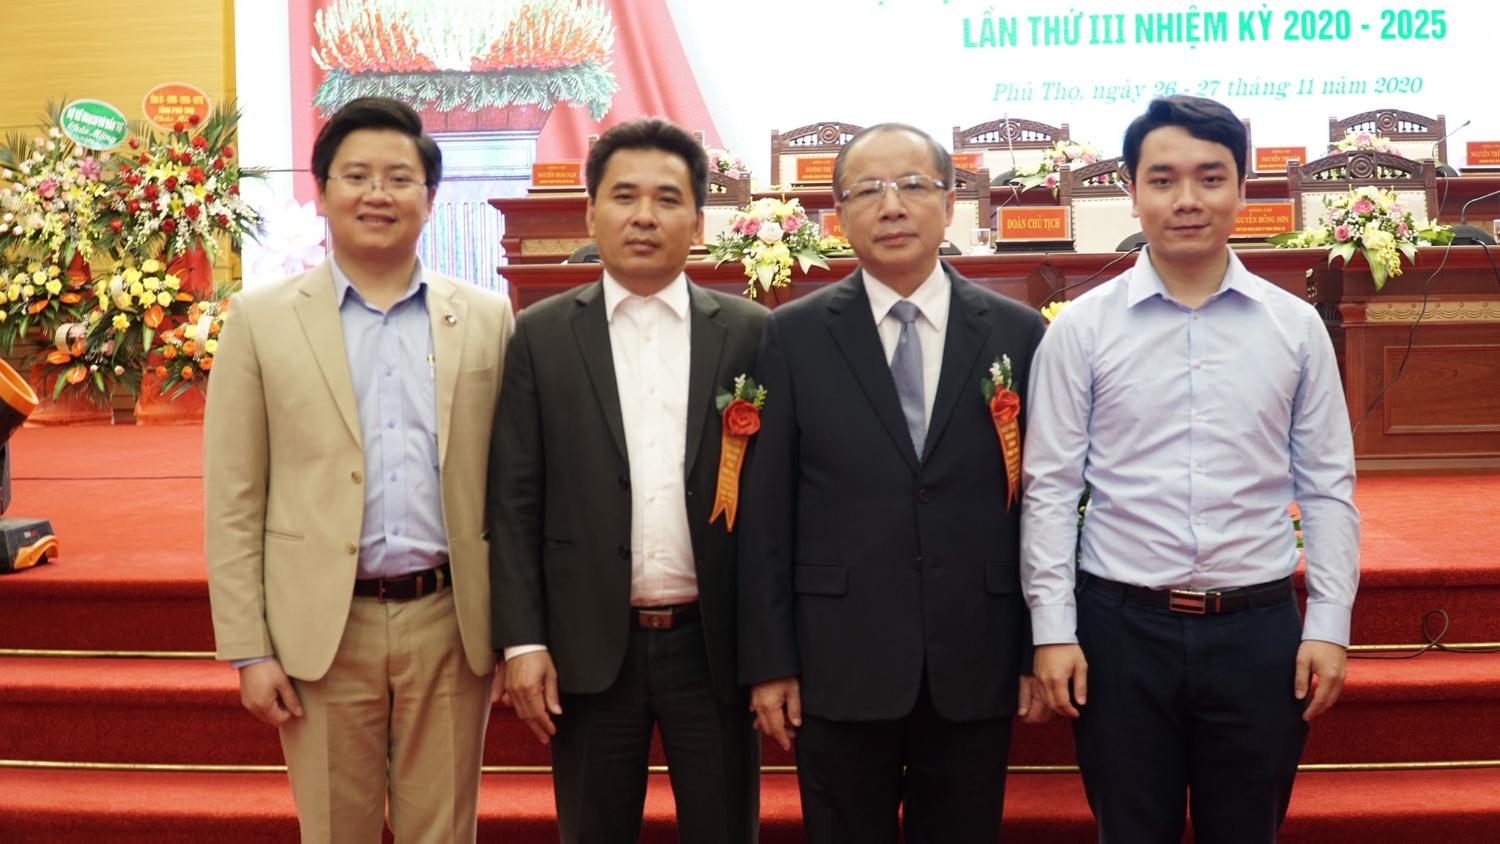 The Congress of the Association of Small and Medium Enterprises in Phu Tho province for the term of 2020 - 2025